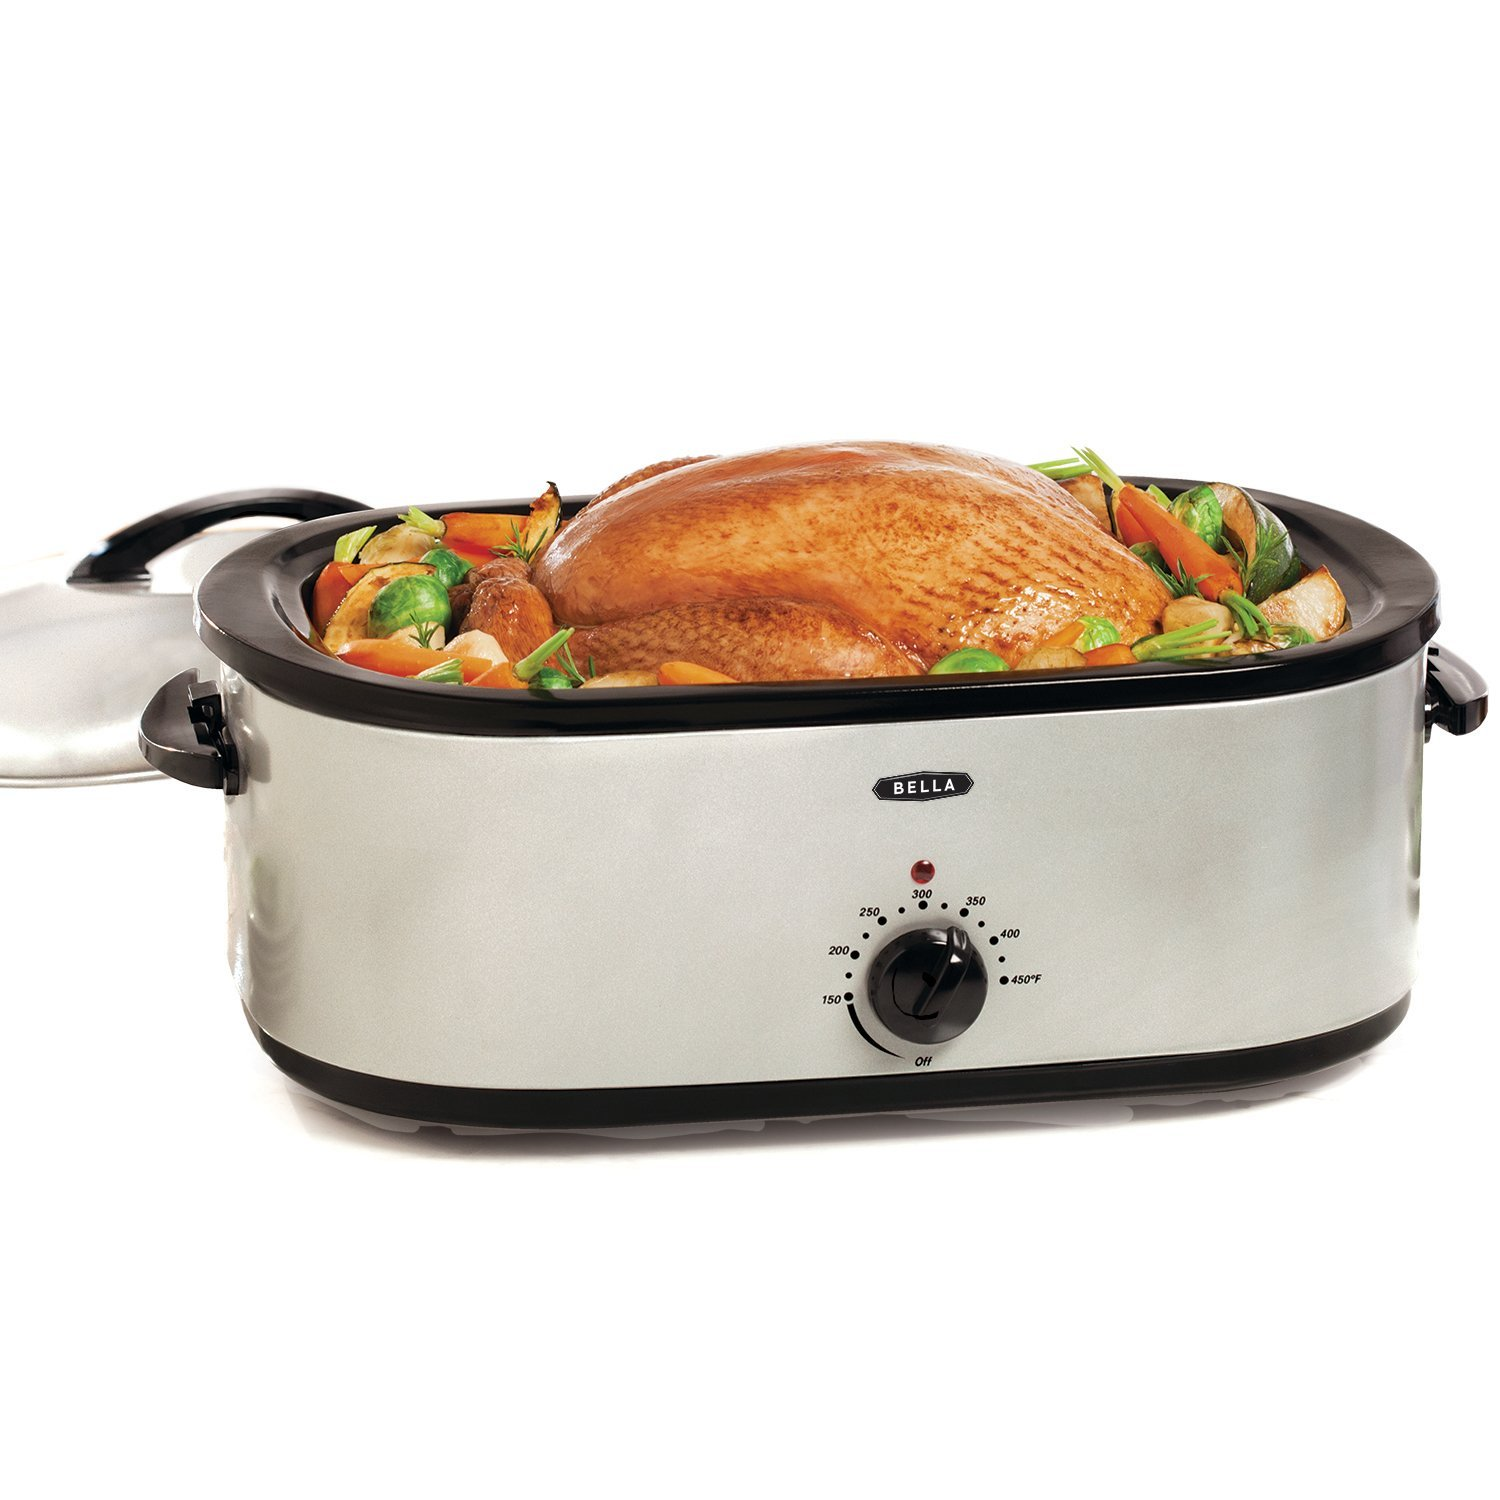 BELLA 18 Quart Turkey Roaster Oven with Roasting Rack, Silver 13425